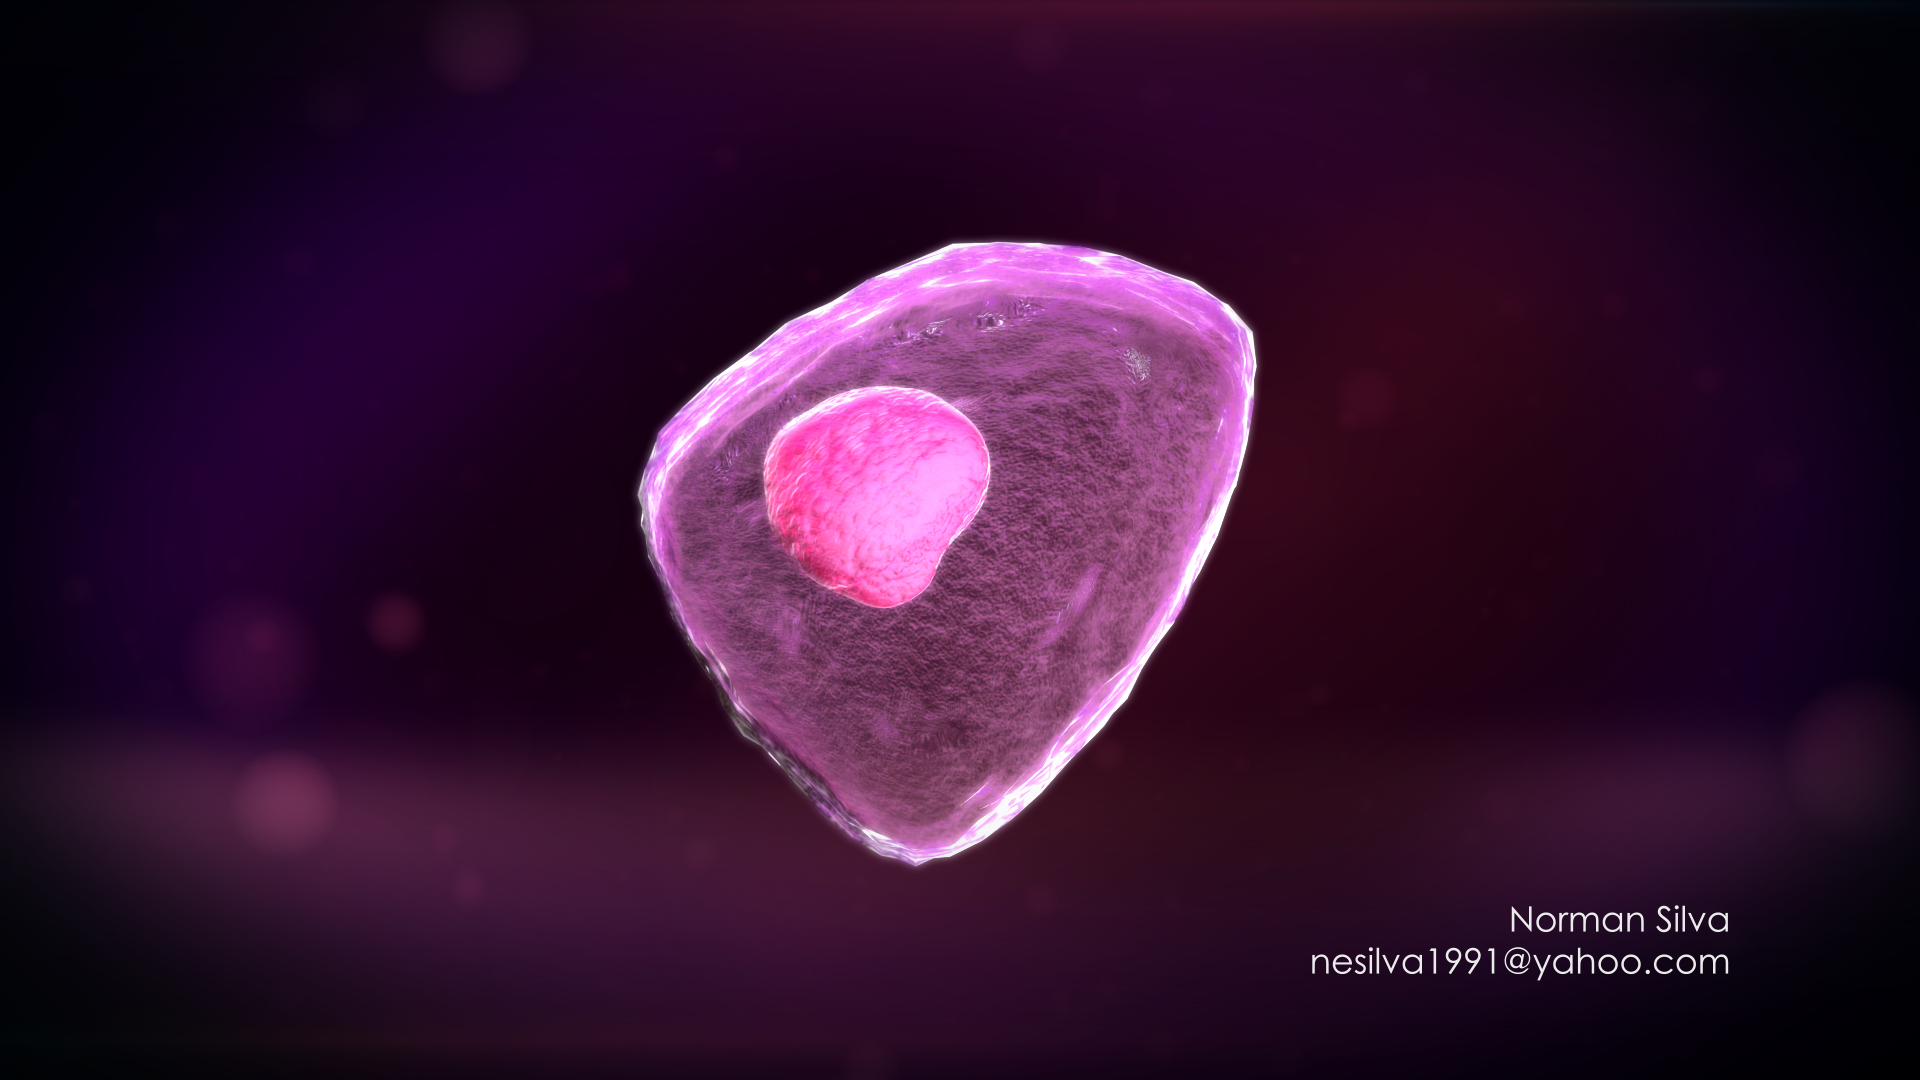 Visualizations-Norman Silva- Manatee Skin Cell.png